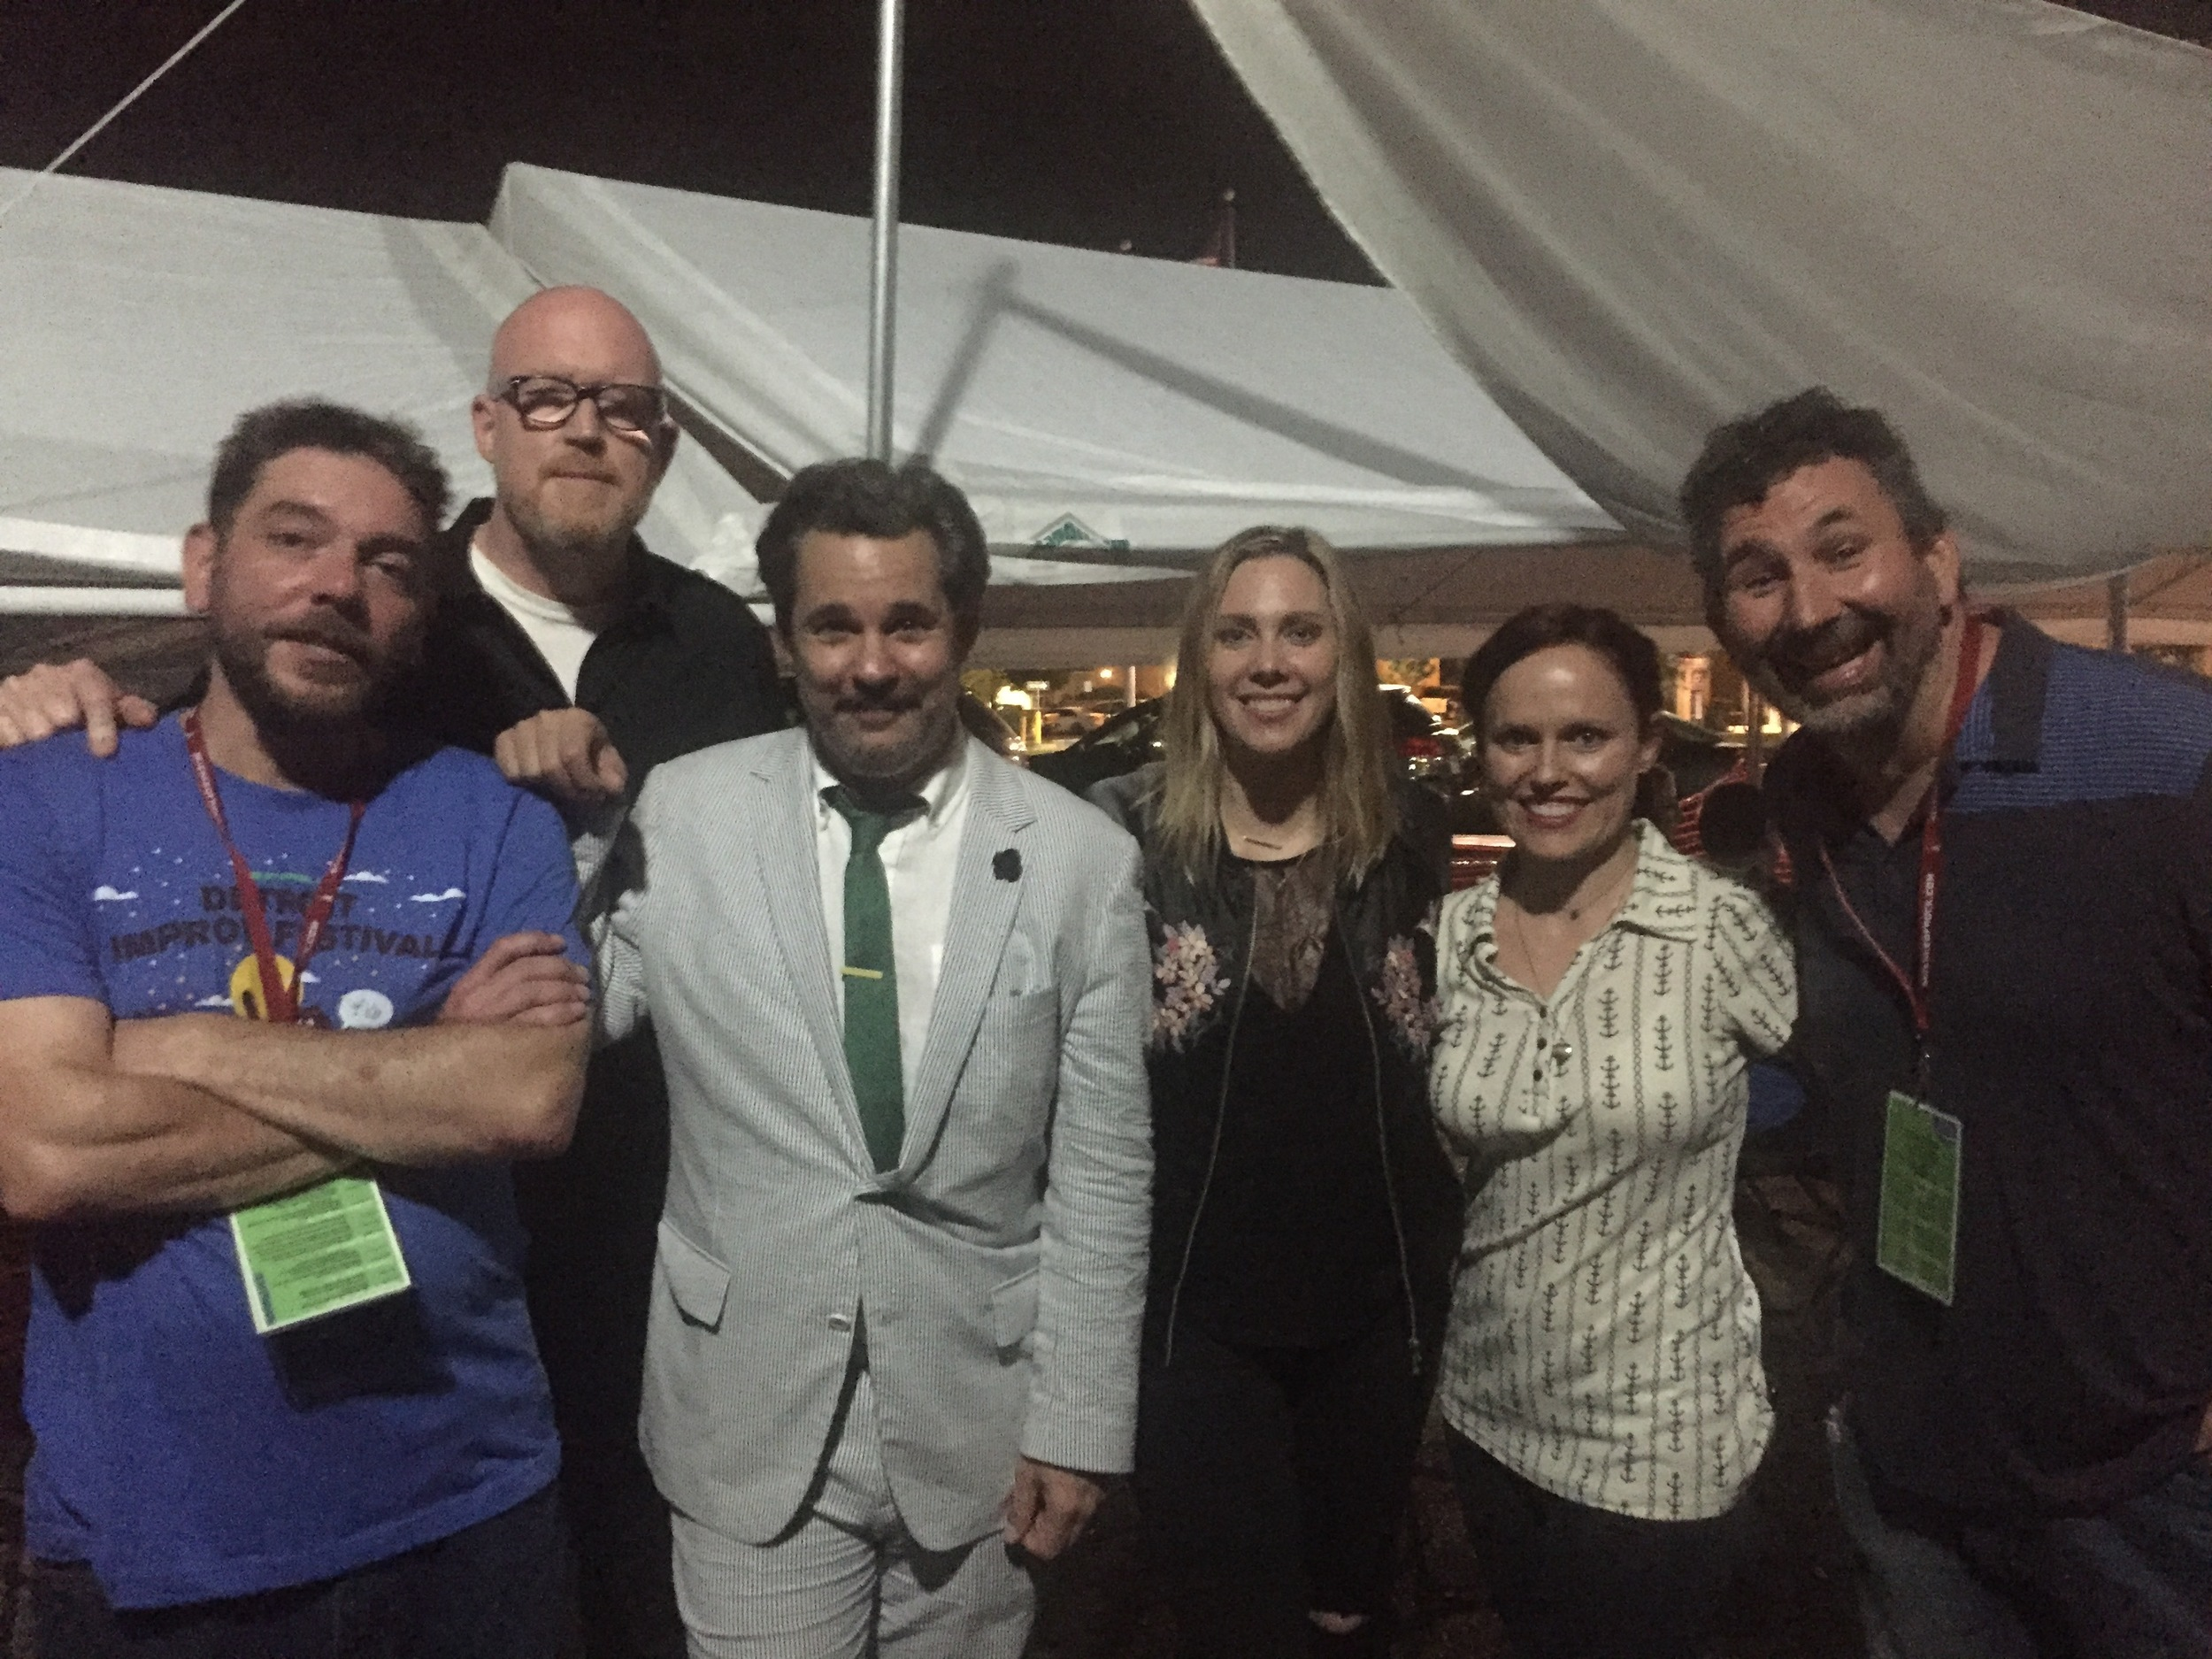 """""""DIF ALLSTARS"""" performed on Saturday August 13th at 10pm. (Photo courtesy of Amy Phillips)   Detroit Improv Fest Allstars with Amy Phillips, Joe Bill, Craig Cackowski, Carla Cackowski, Paul F. Tompkins, and Jaclynn Cherry."""